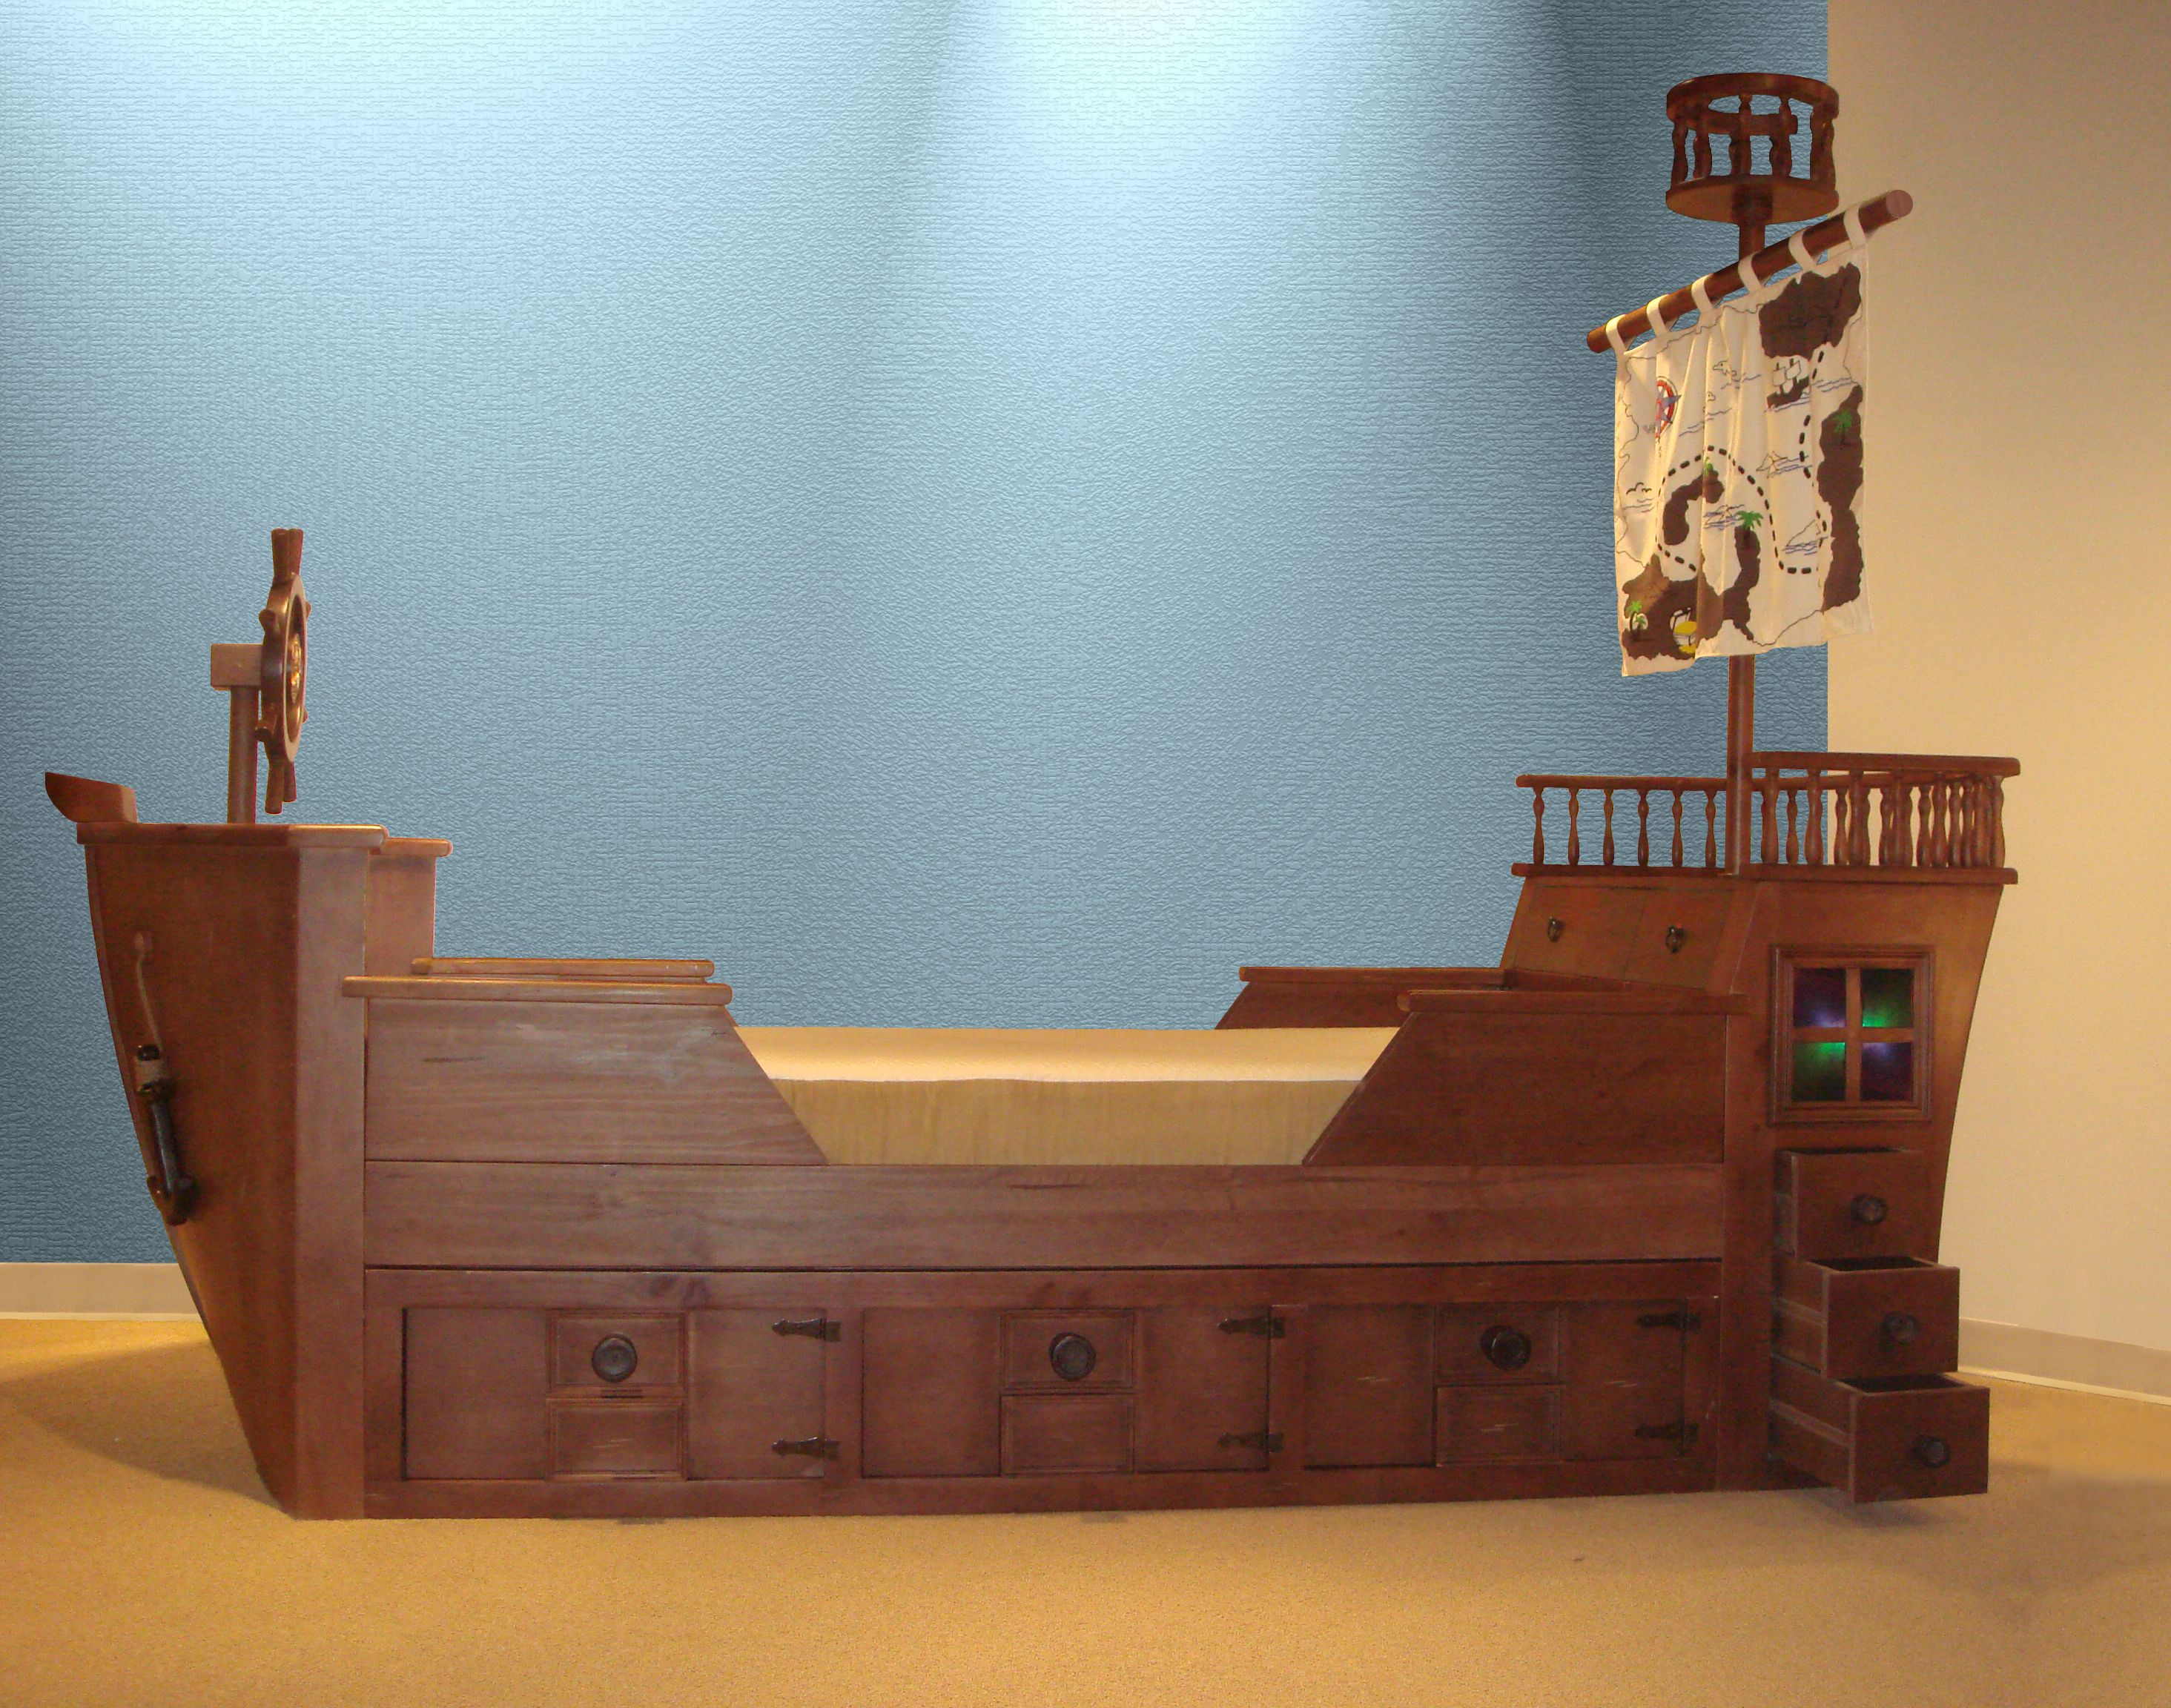 How Much To Ship Furniture Plans Pirate Ship Beds  My Captain's Pirate Ship Bed  Pinterest .